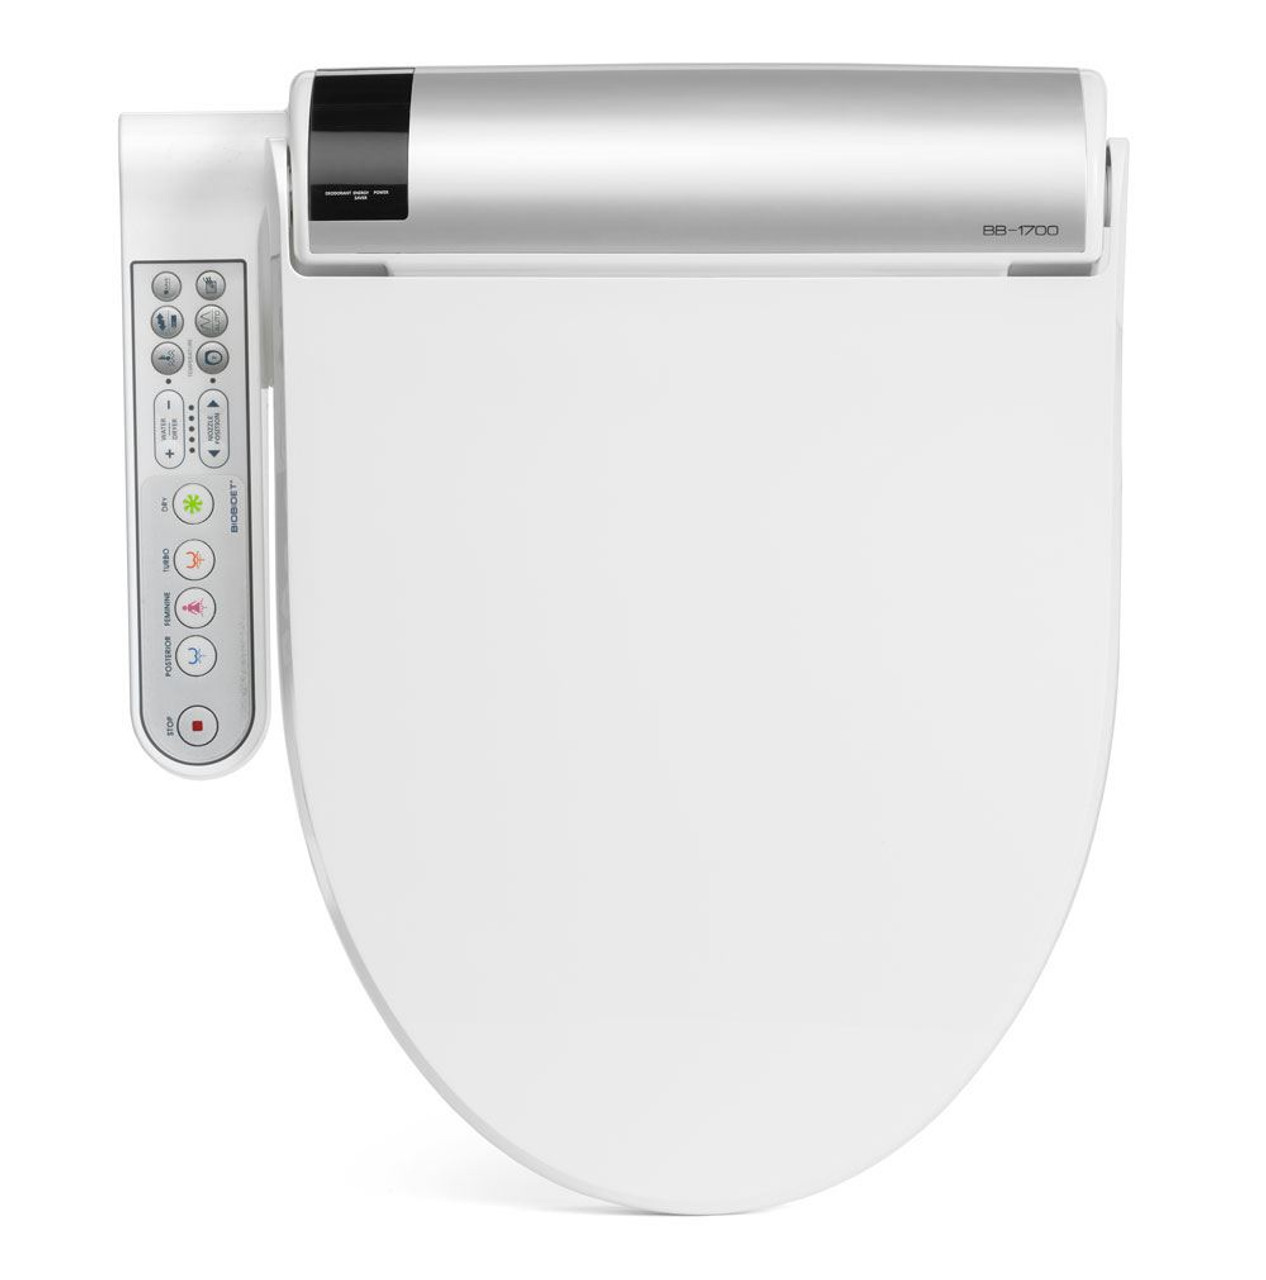 Bidet Toilet Seat   BLISS with Side Controls by BioBidet Top View. Bidet Toilet Seat   BLISS with Side Controls by BioBidet